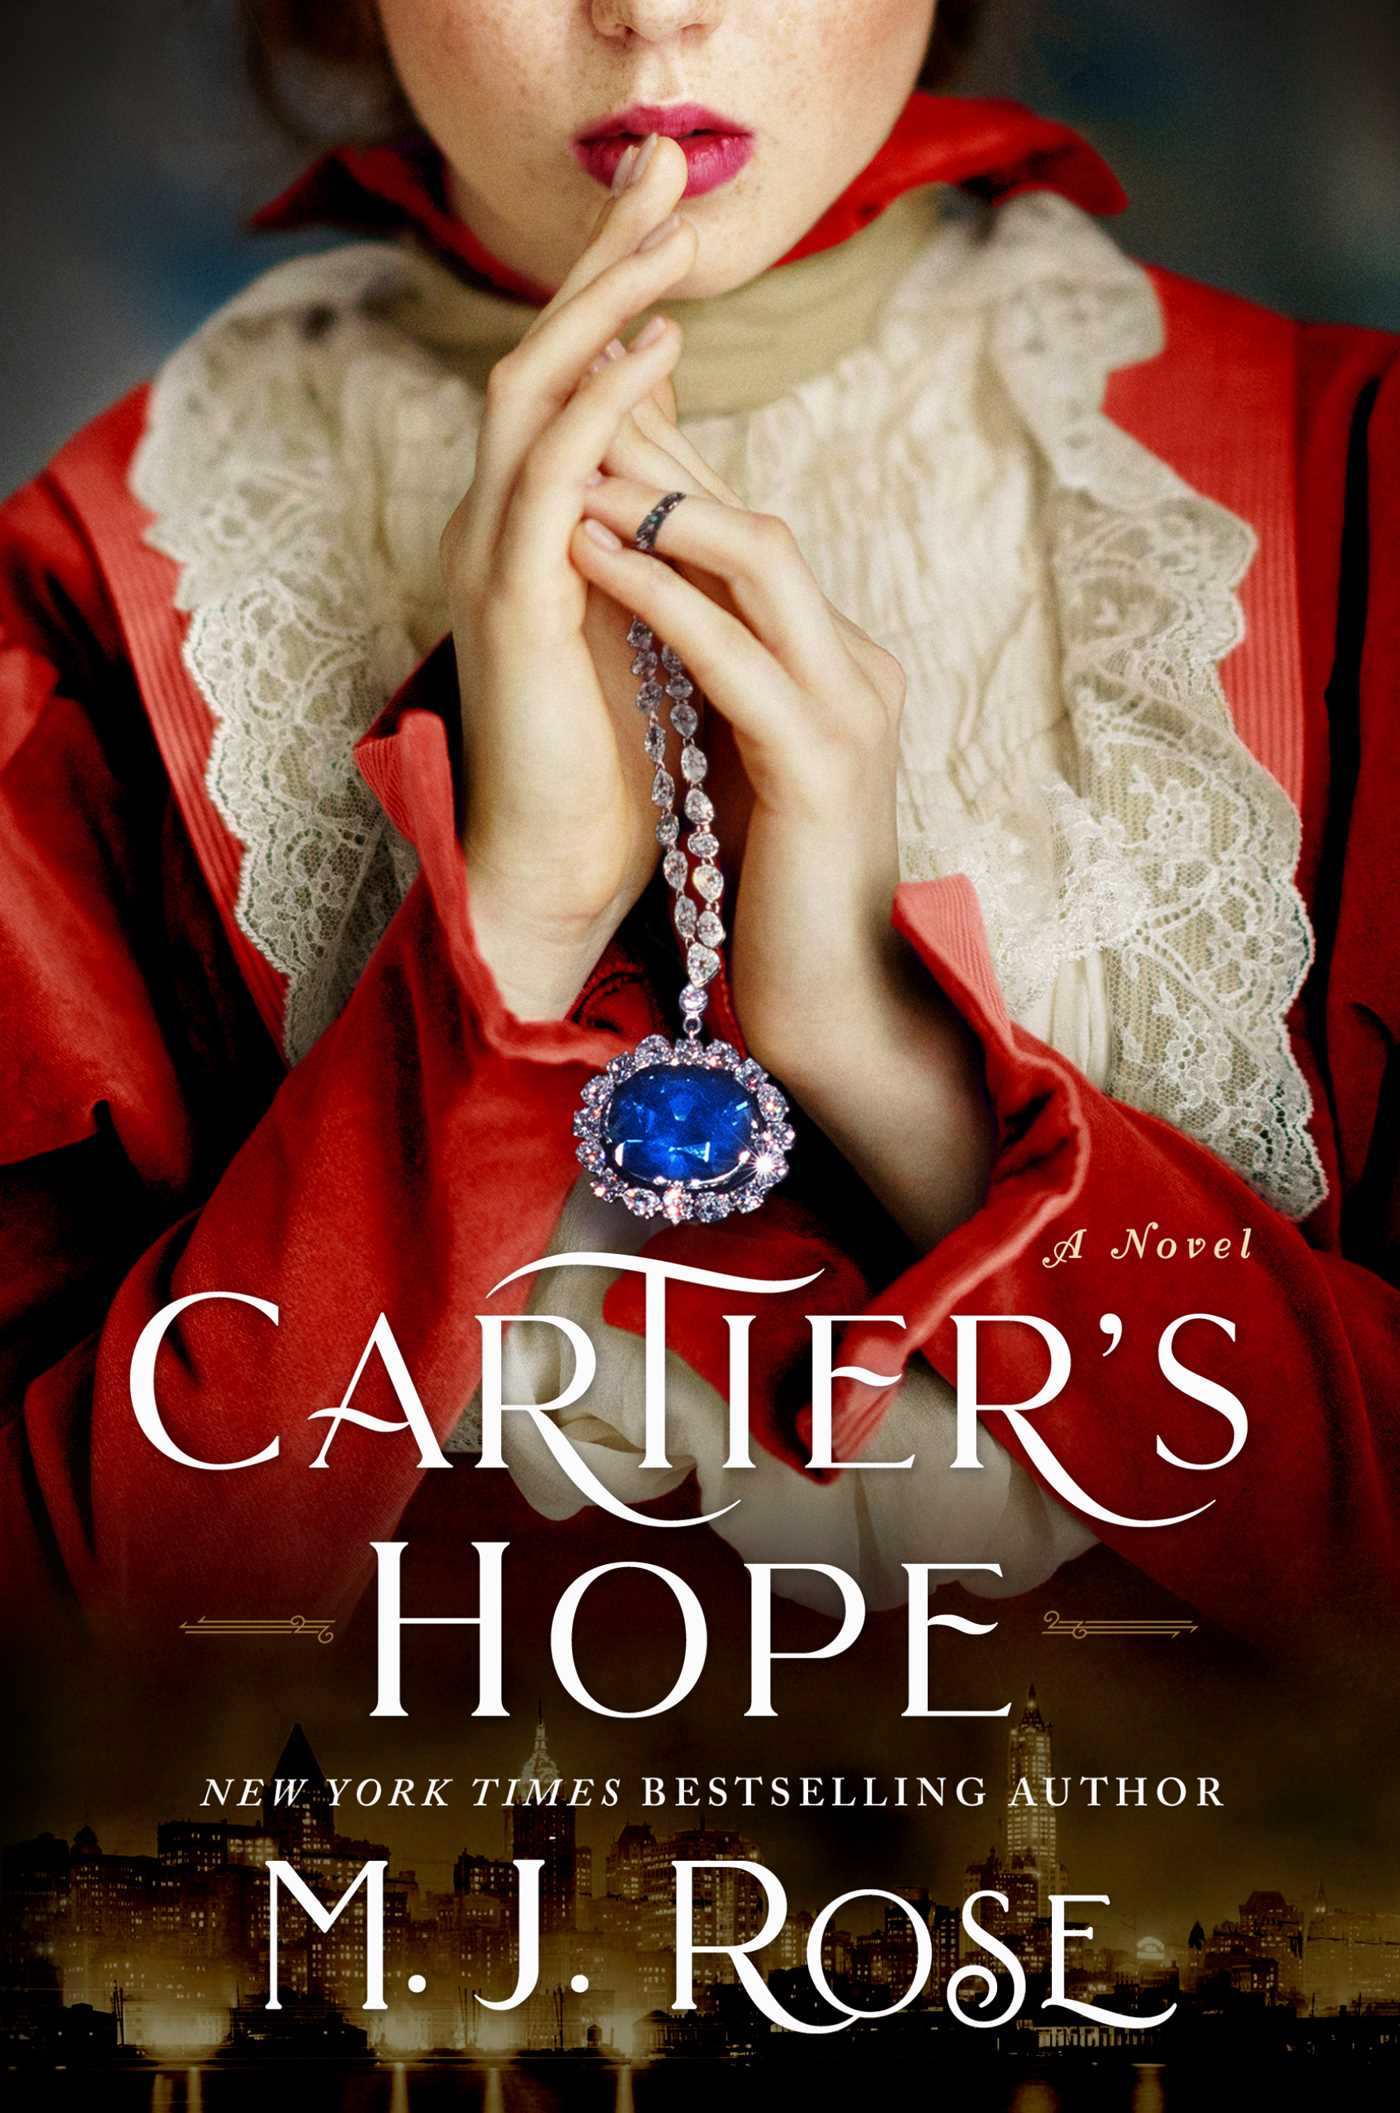 Best Historical Fiction 2020.The Most Anticipated Historical Fiction Of 2020 She Reads